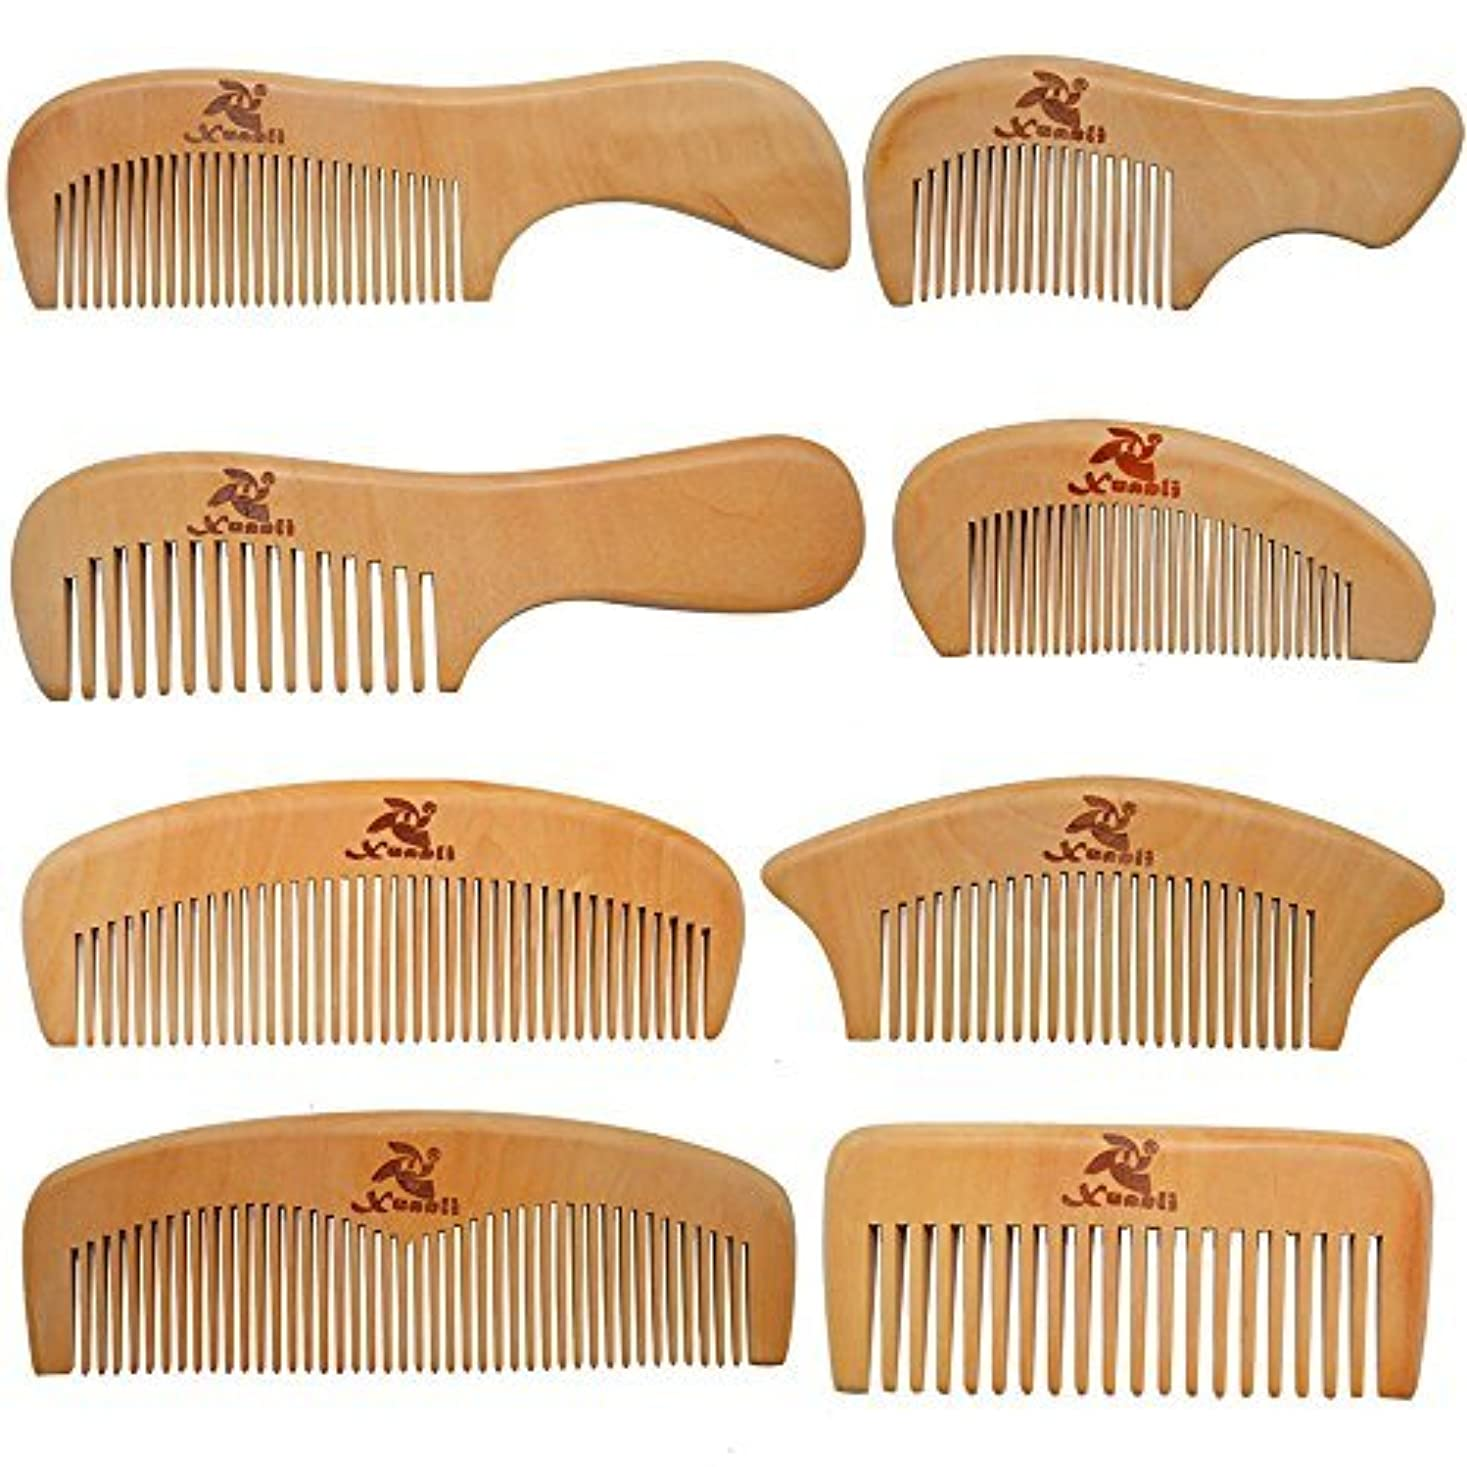 取り替える読みやすい仲間Xuanli 8 Pcs The Family Of Hair Comb set - Wood with Anti-Static & No Snag Handmade Brush for Beard, Head Hair...